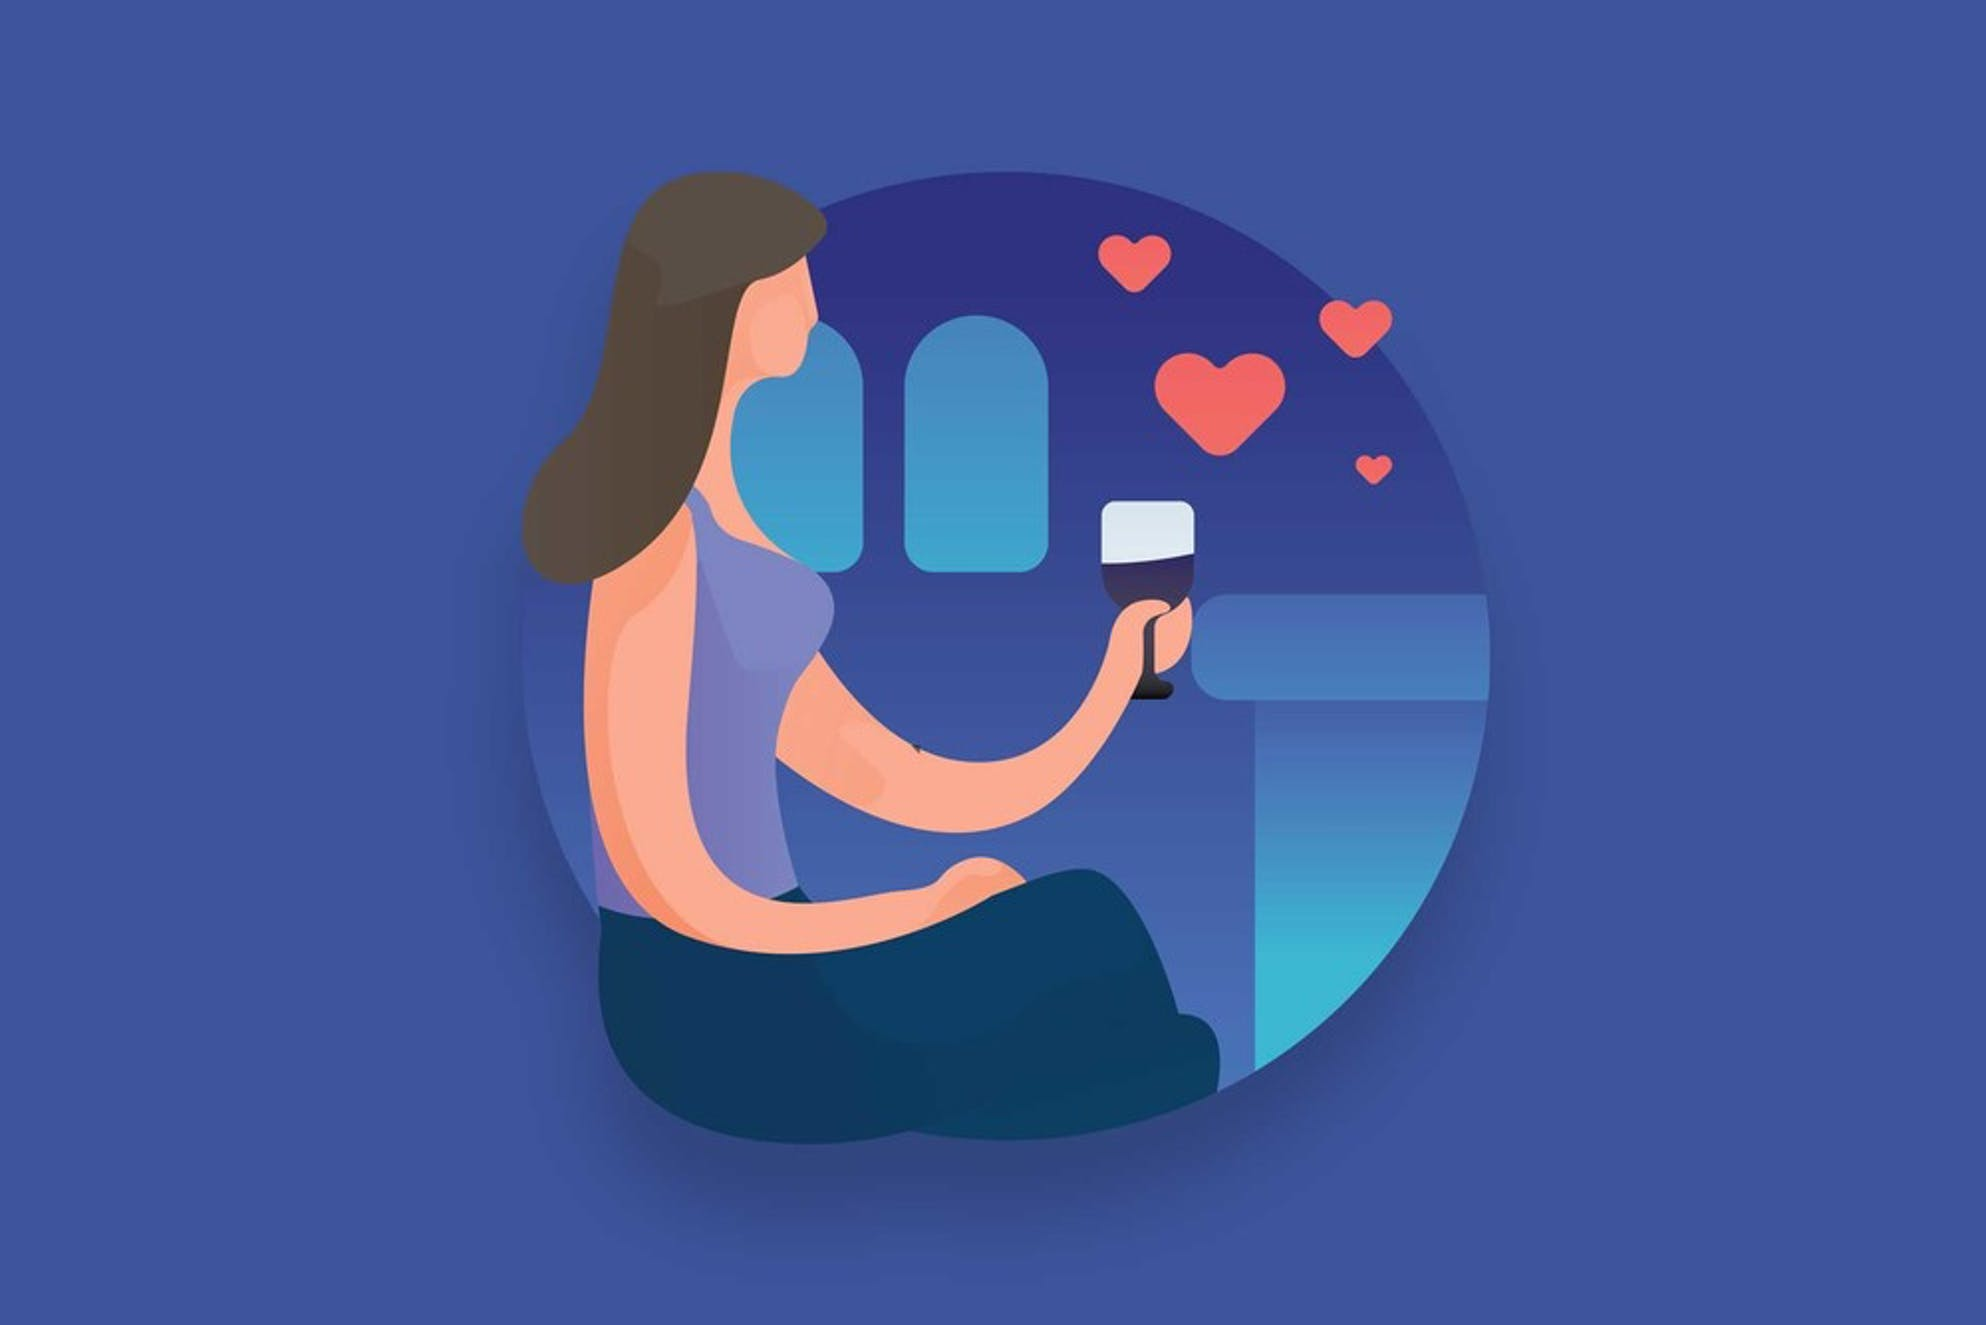 Become an online dating consultant as a side hustle to make more money